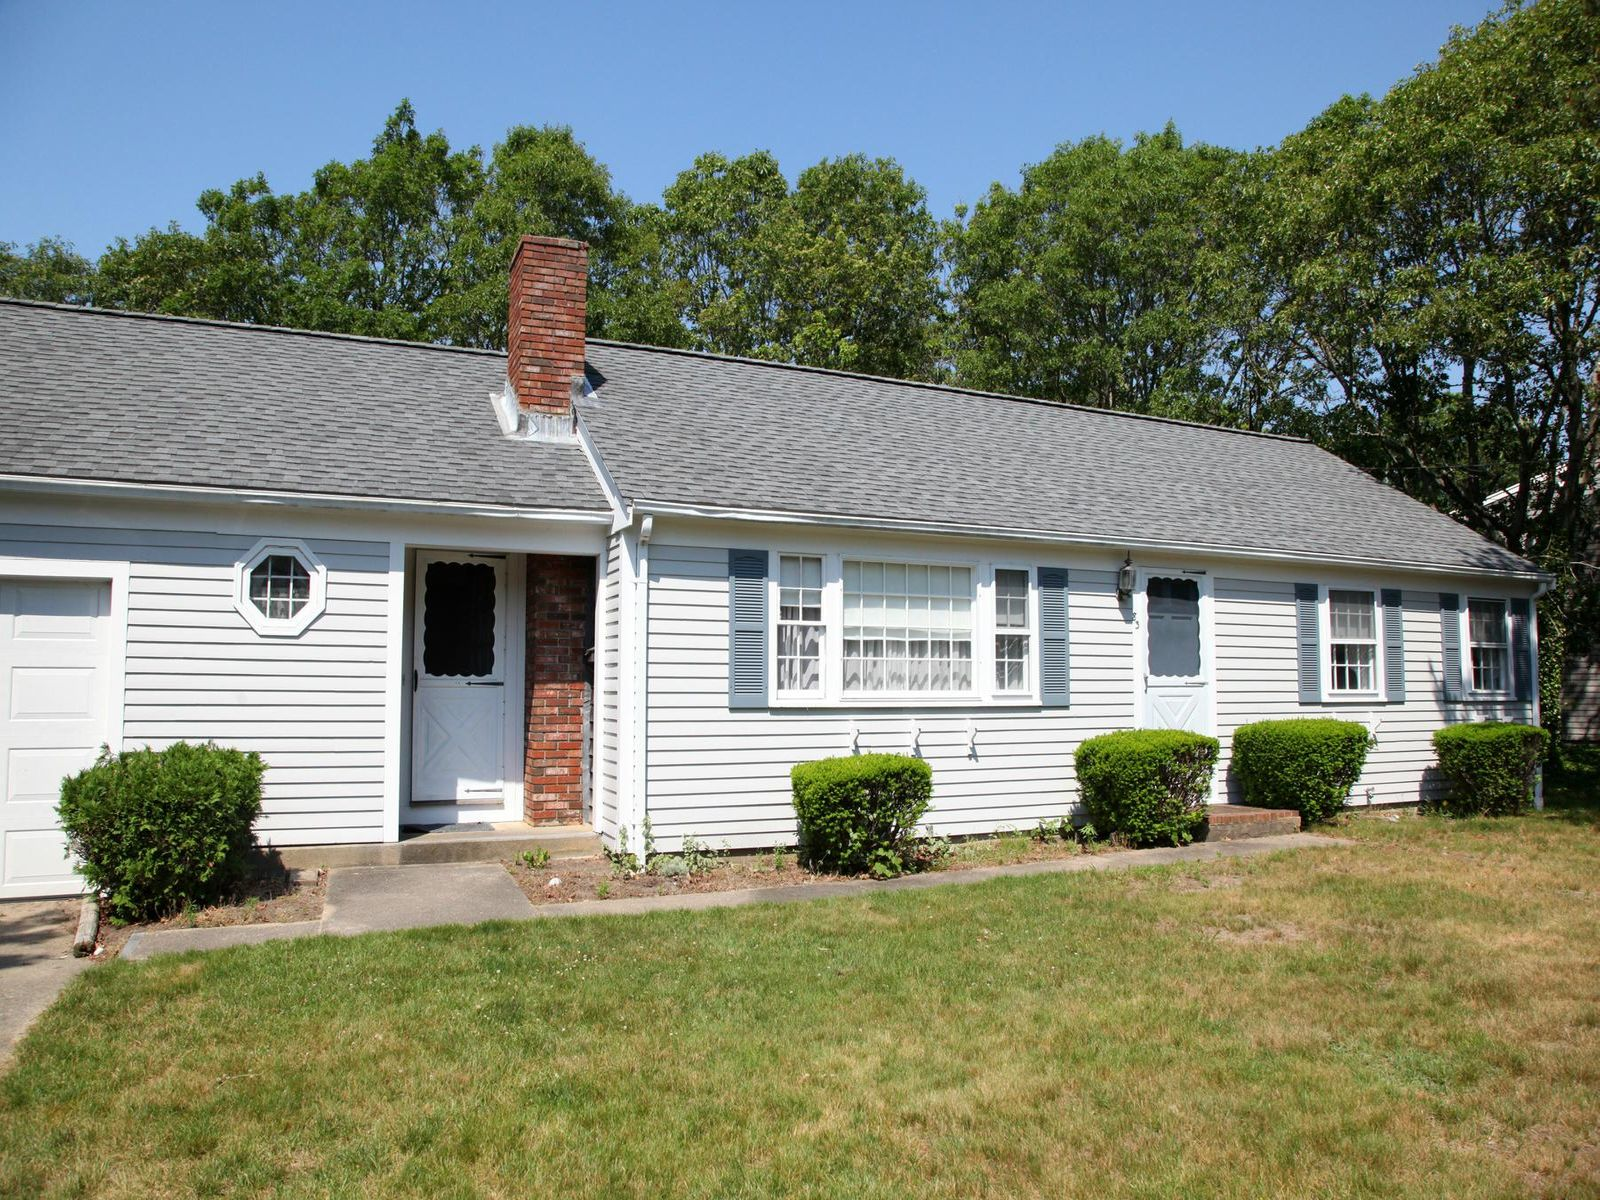 Gateway Isles Ranch, South Yarmouth MA Single Family Home - Cape Cod Real Estate